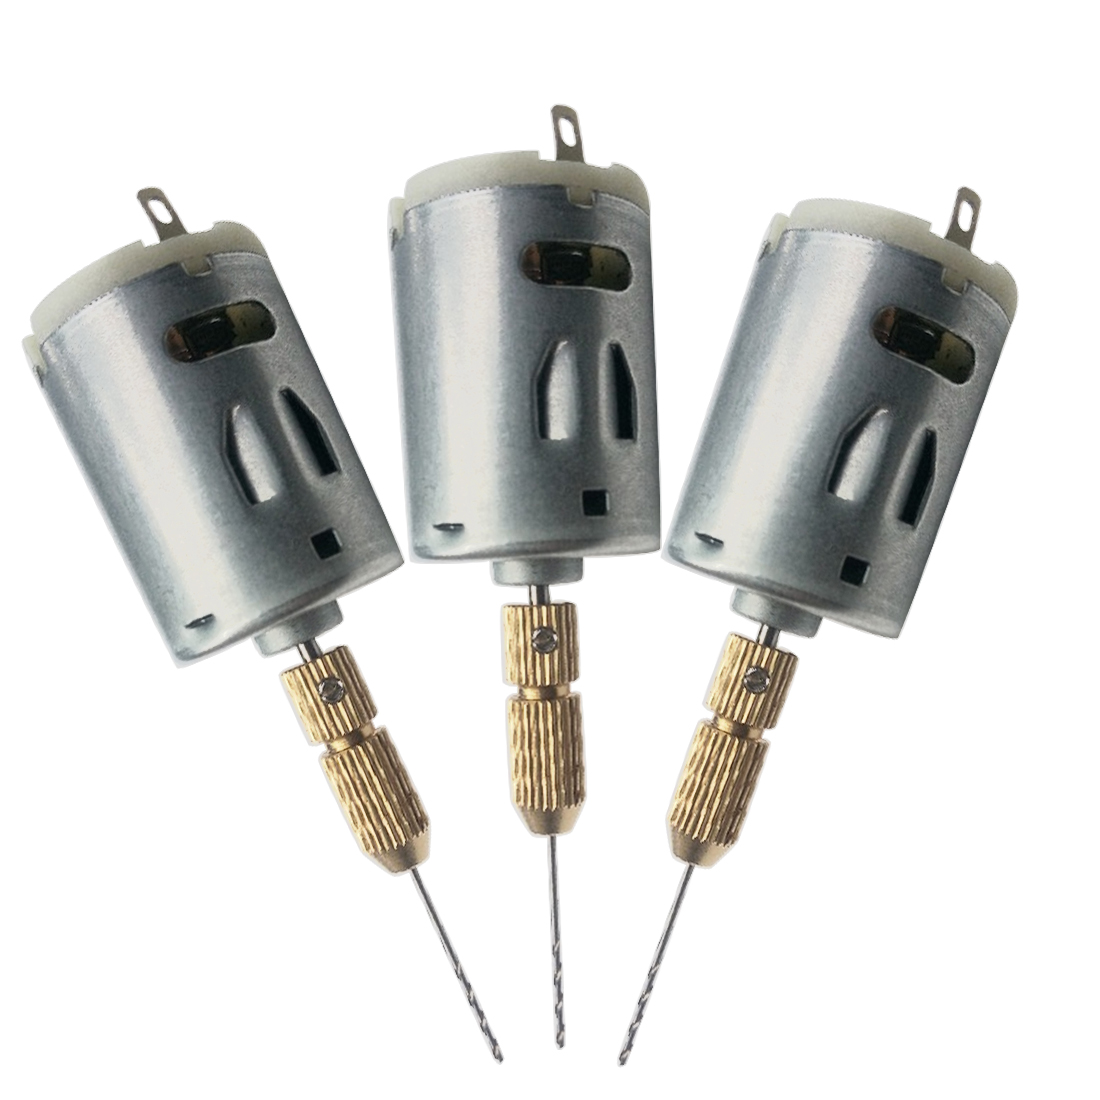 Hot Sale DC 12V Electric Hand Drill Motor PCB Drilling Compact Set 1.0-1.5 Twist Bits +1pc JT0 Chucks Tool High-quality